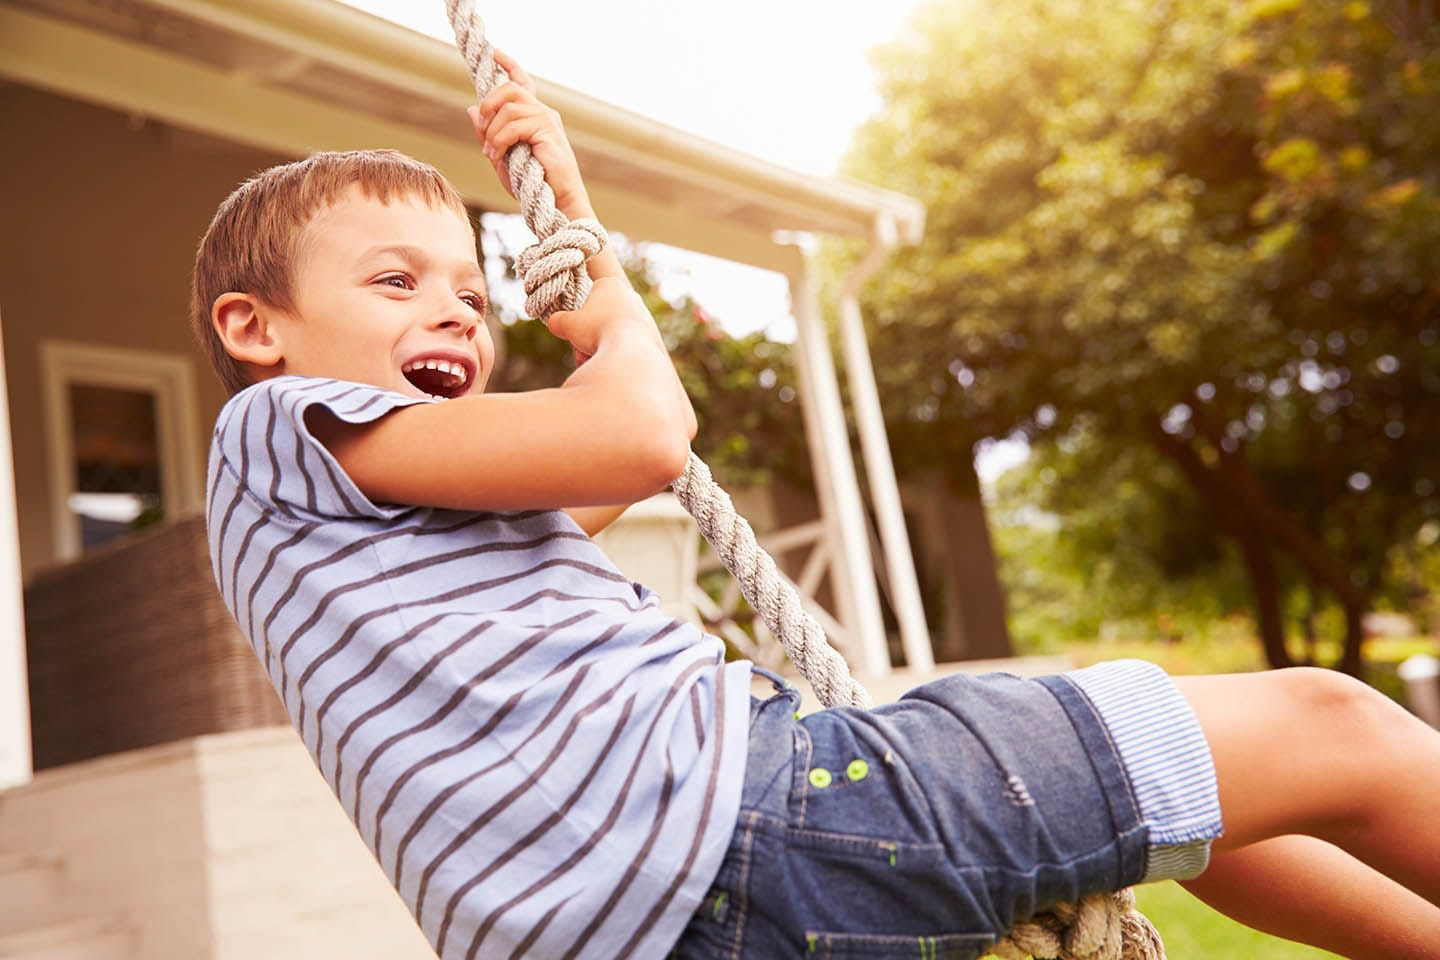 Young boy swinging on a rope